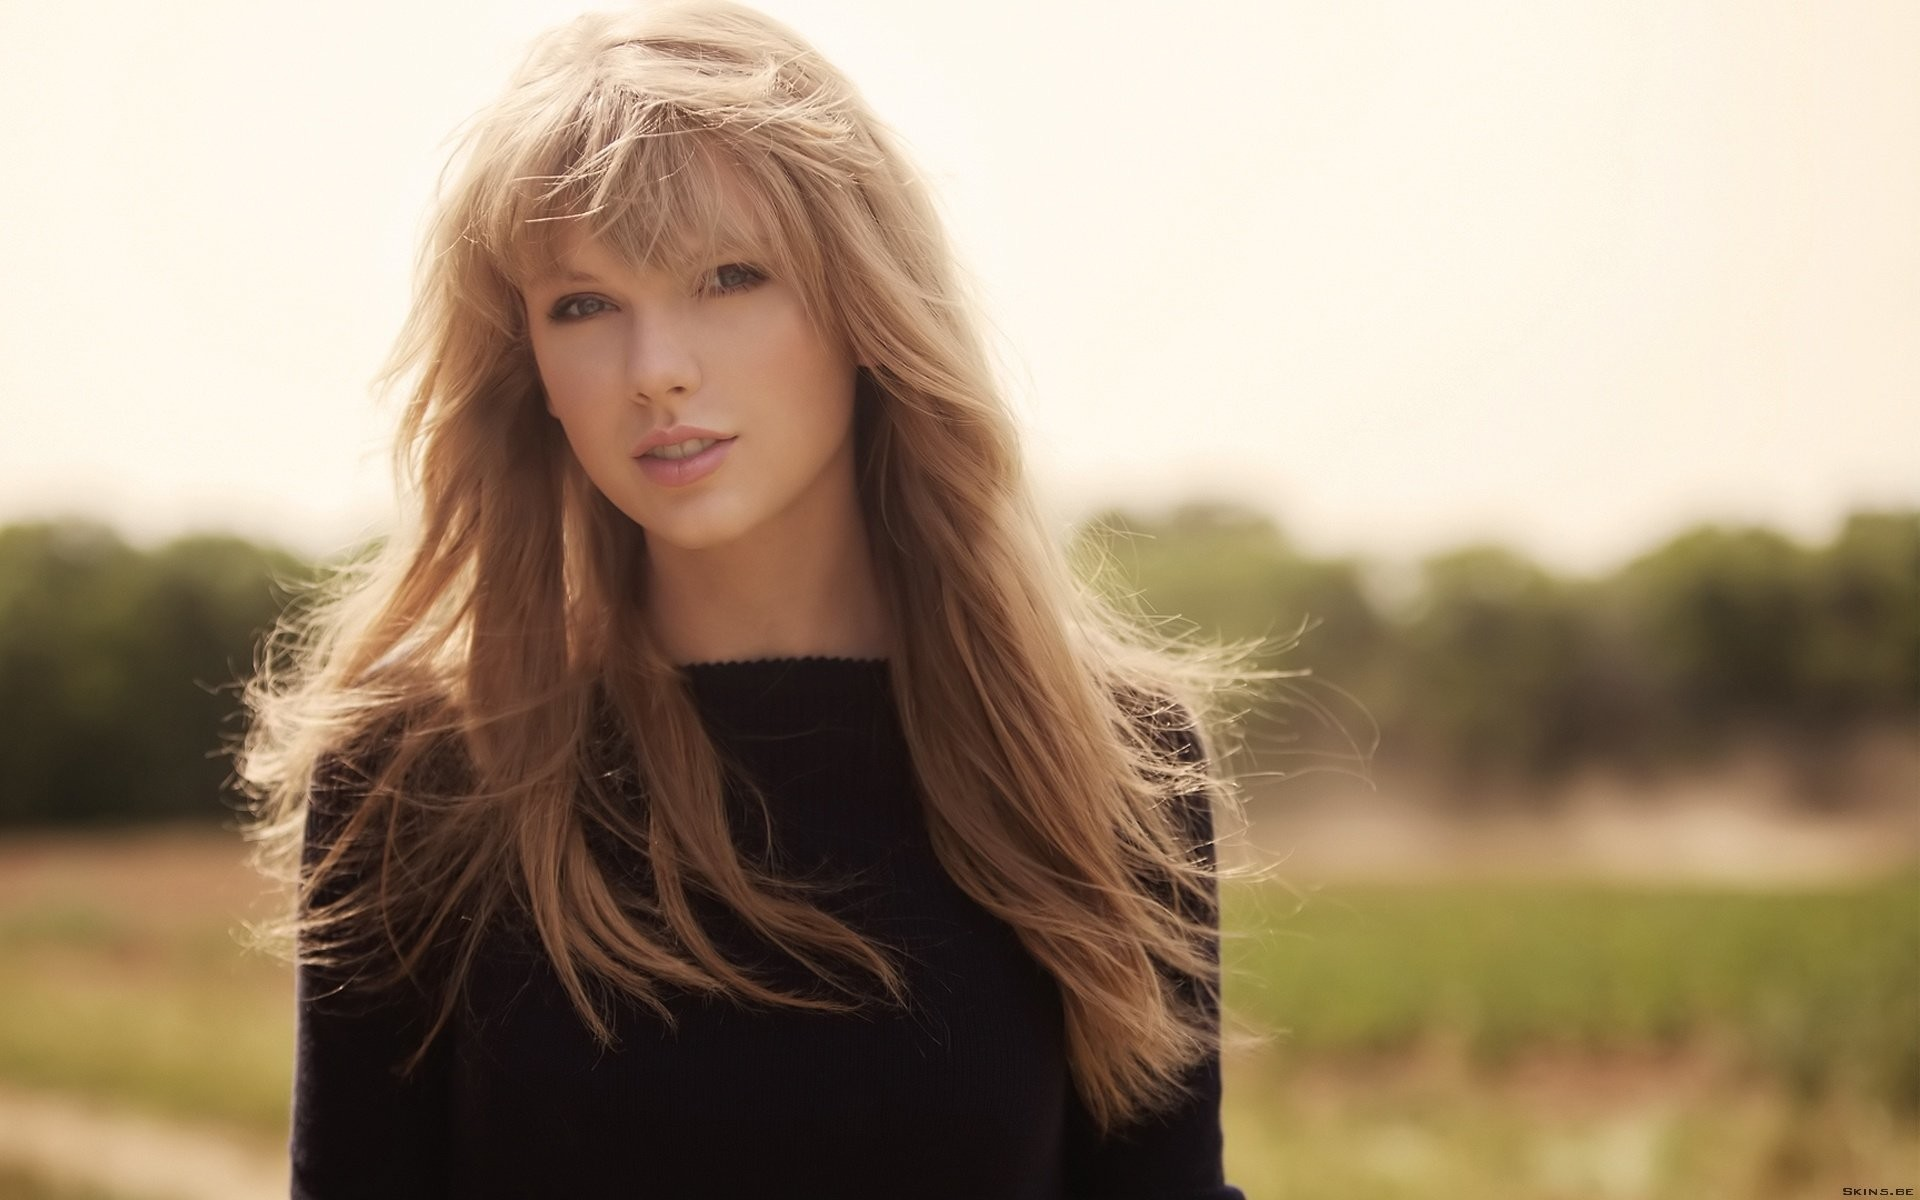 Younger taylor swift face